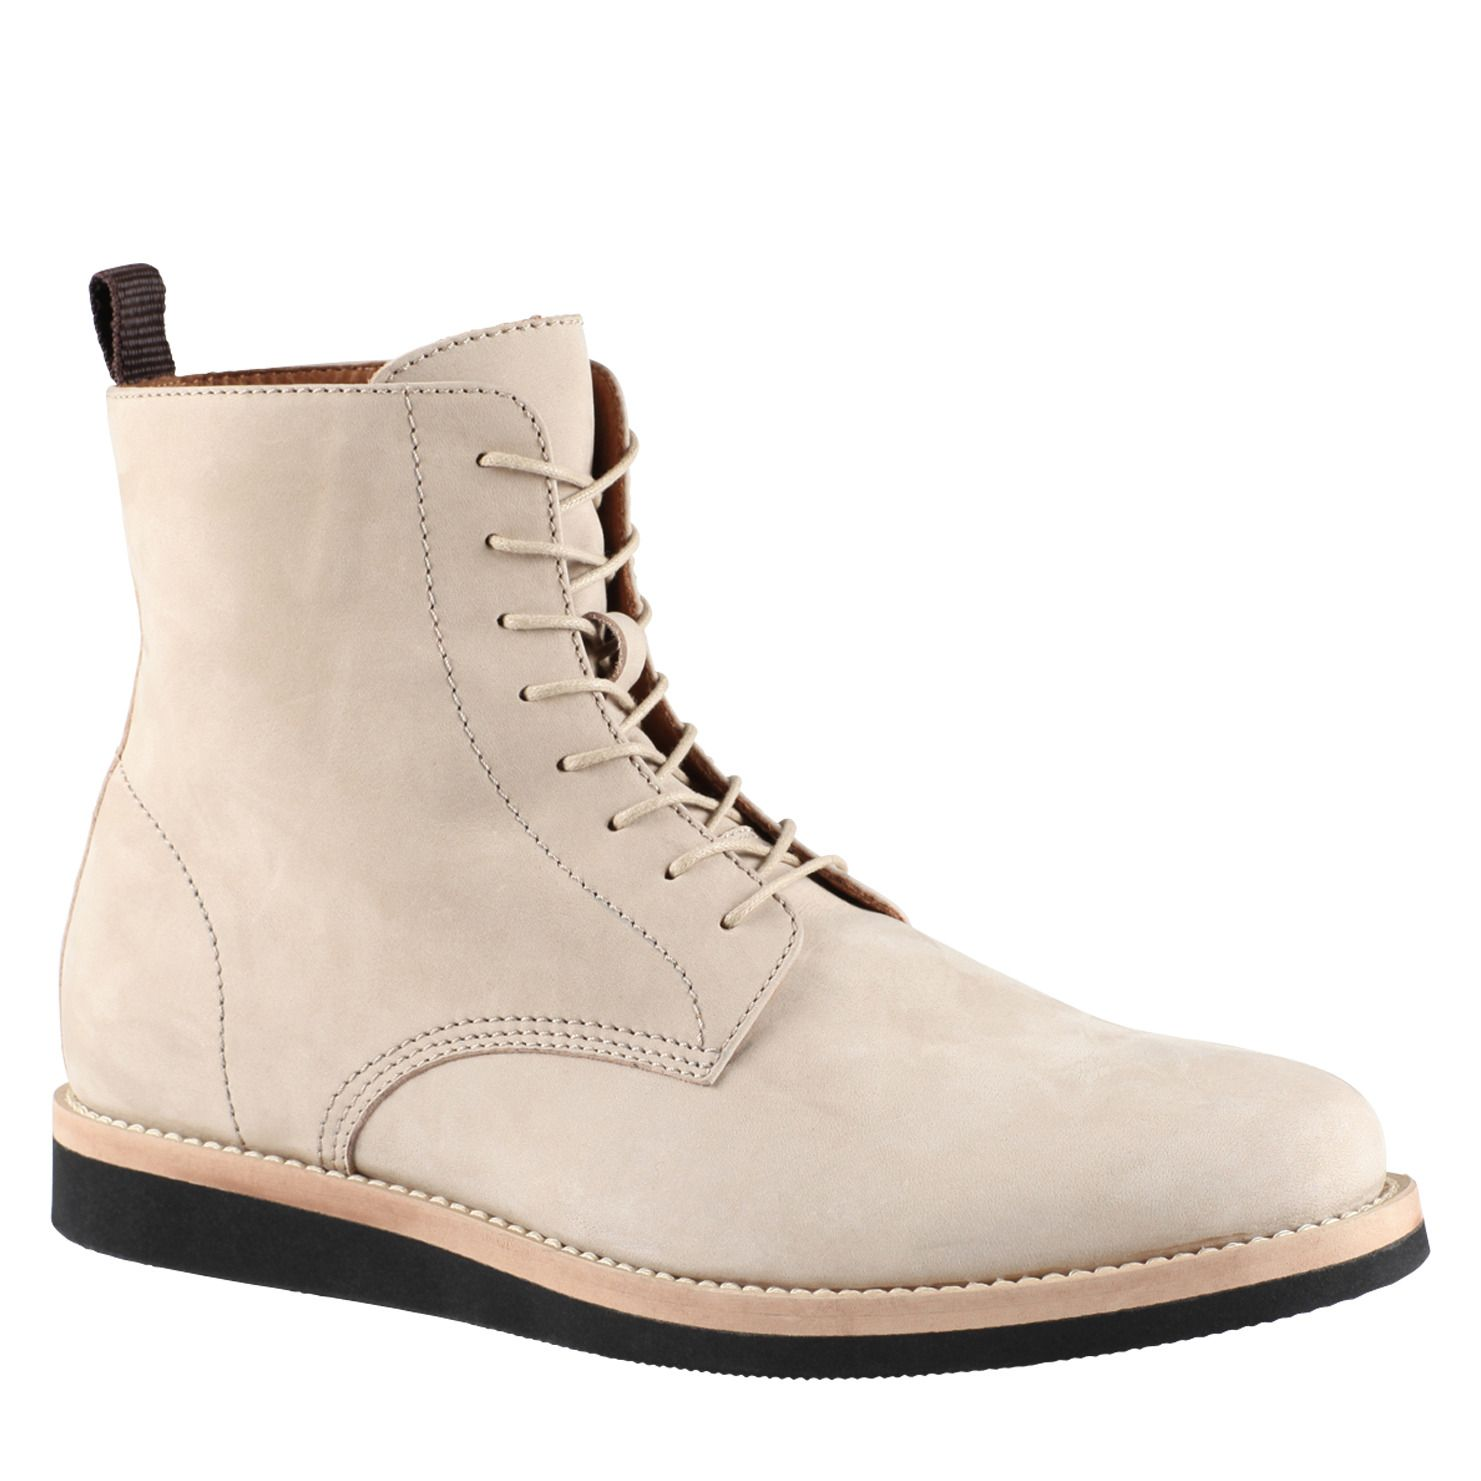 FULBERT - sale&39s sale boots men for sale at ALDO Shoes. | Men&39s